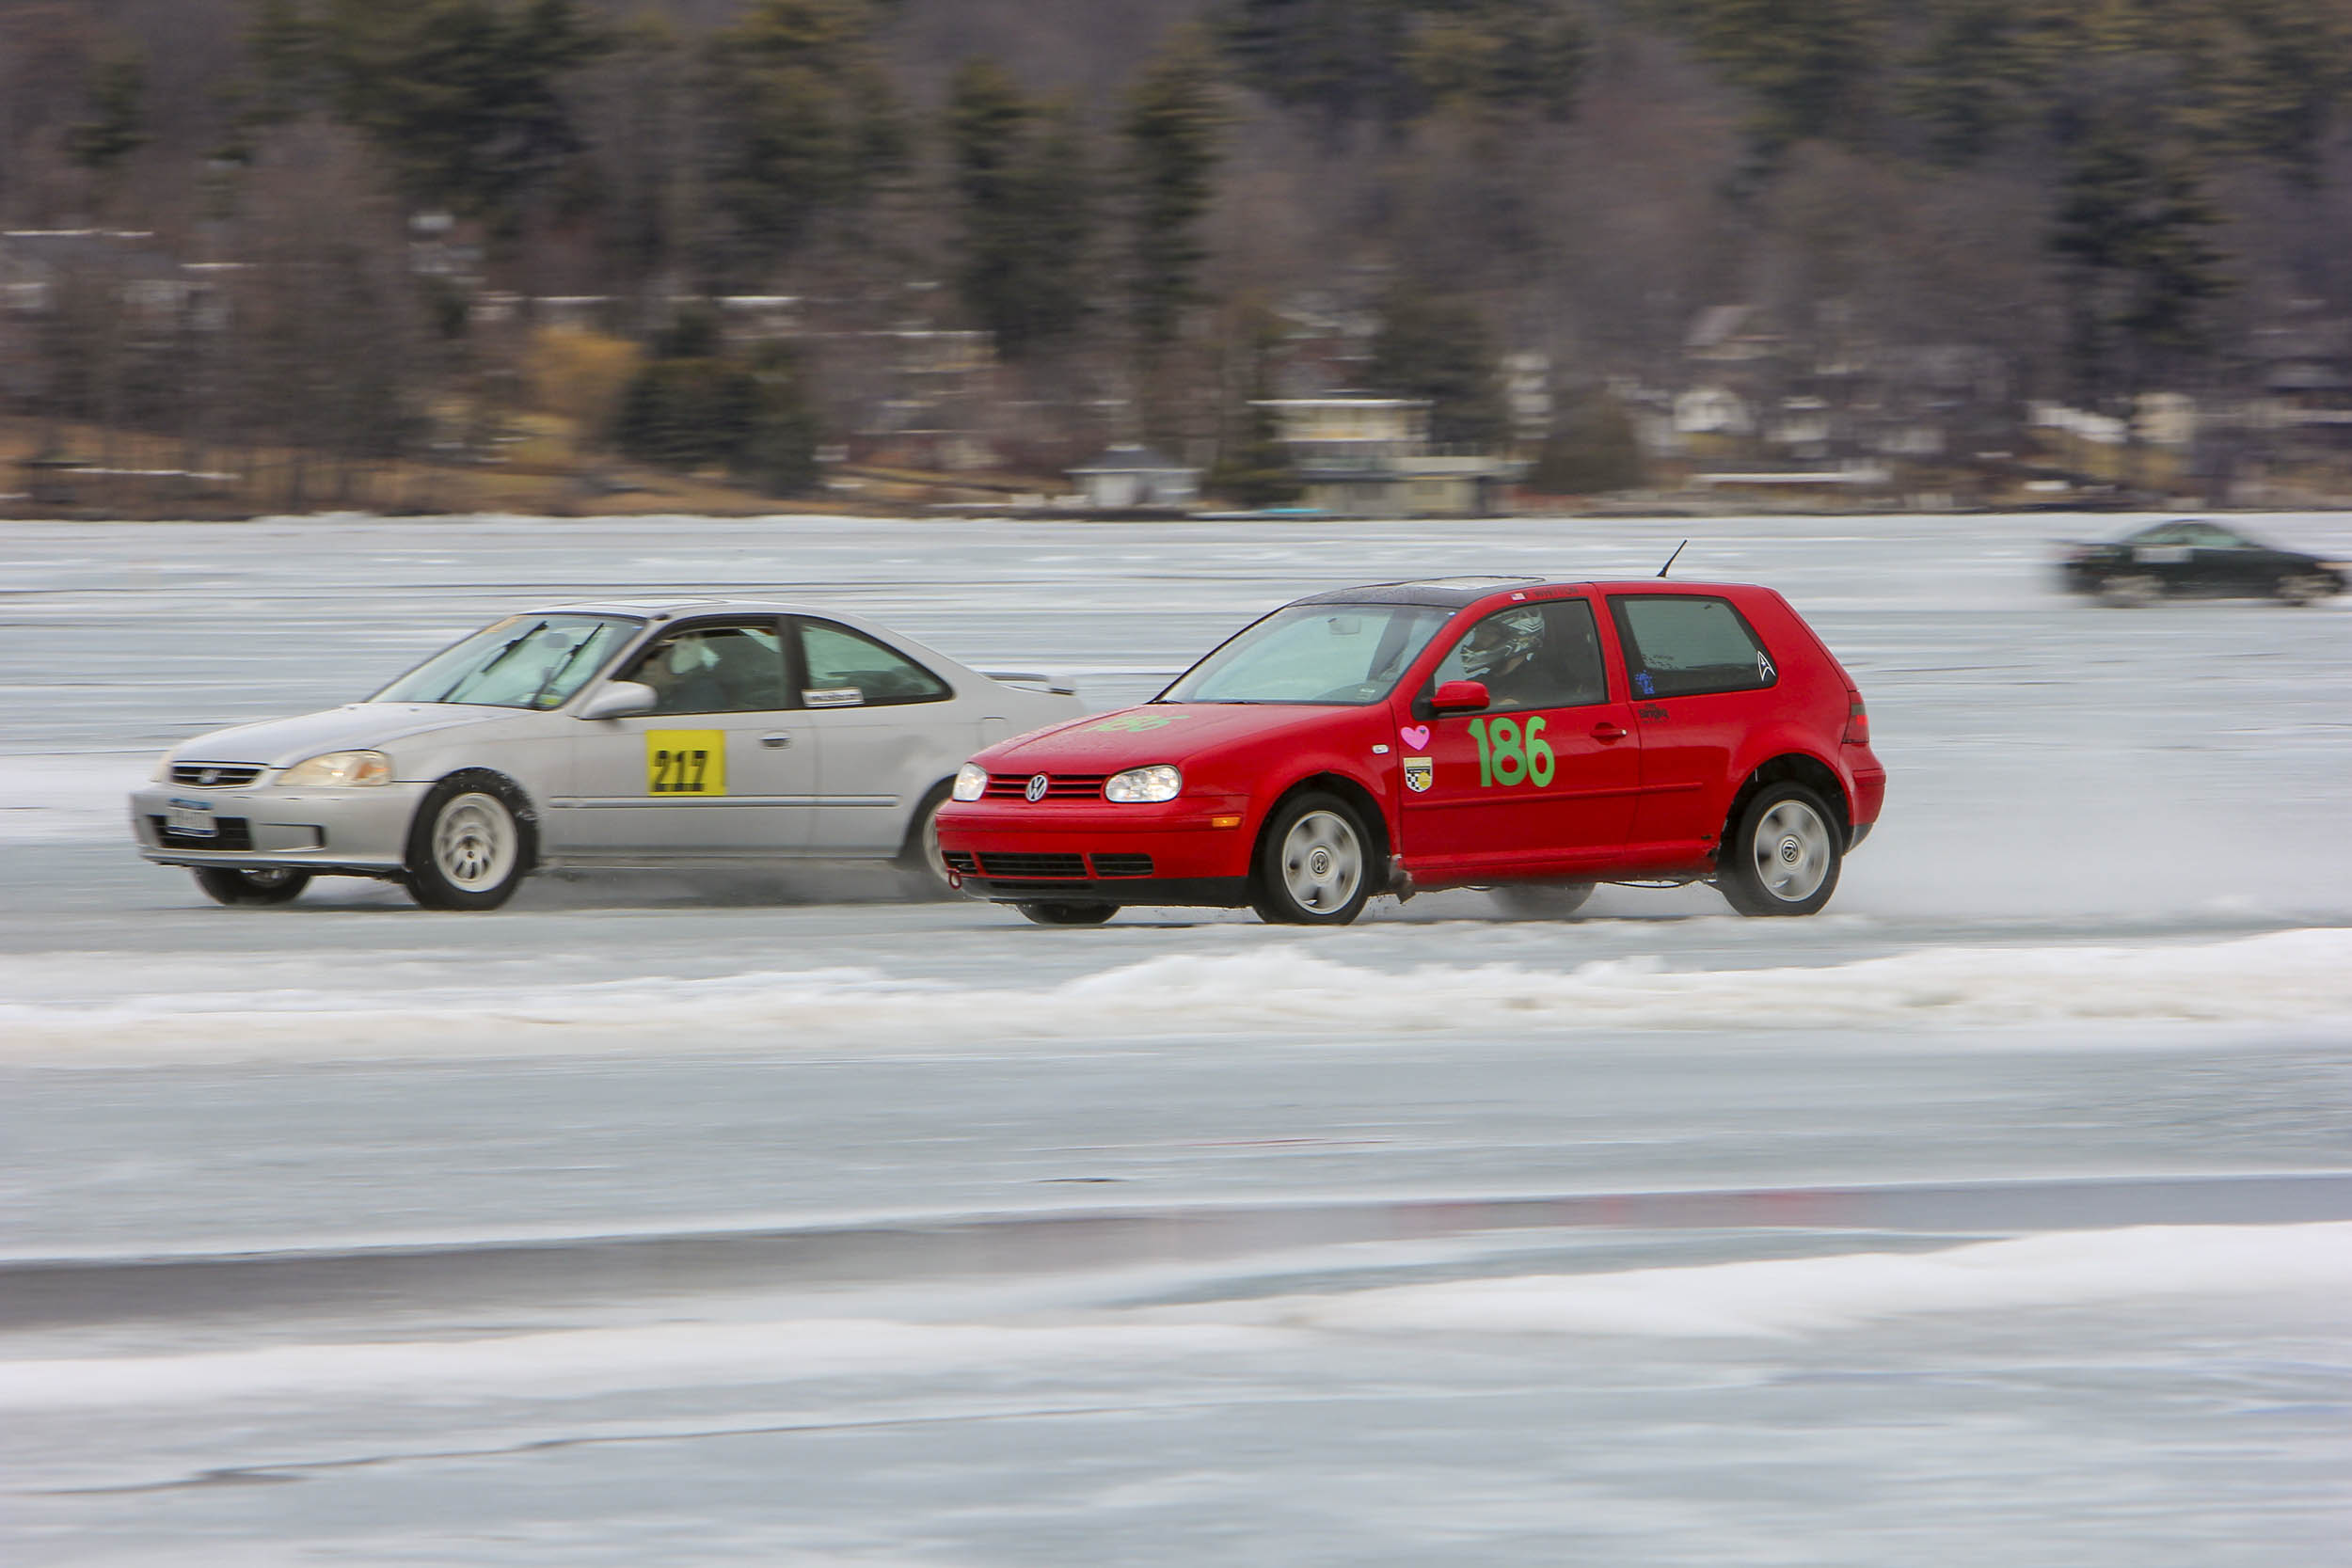 drag racing on ice